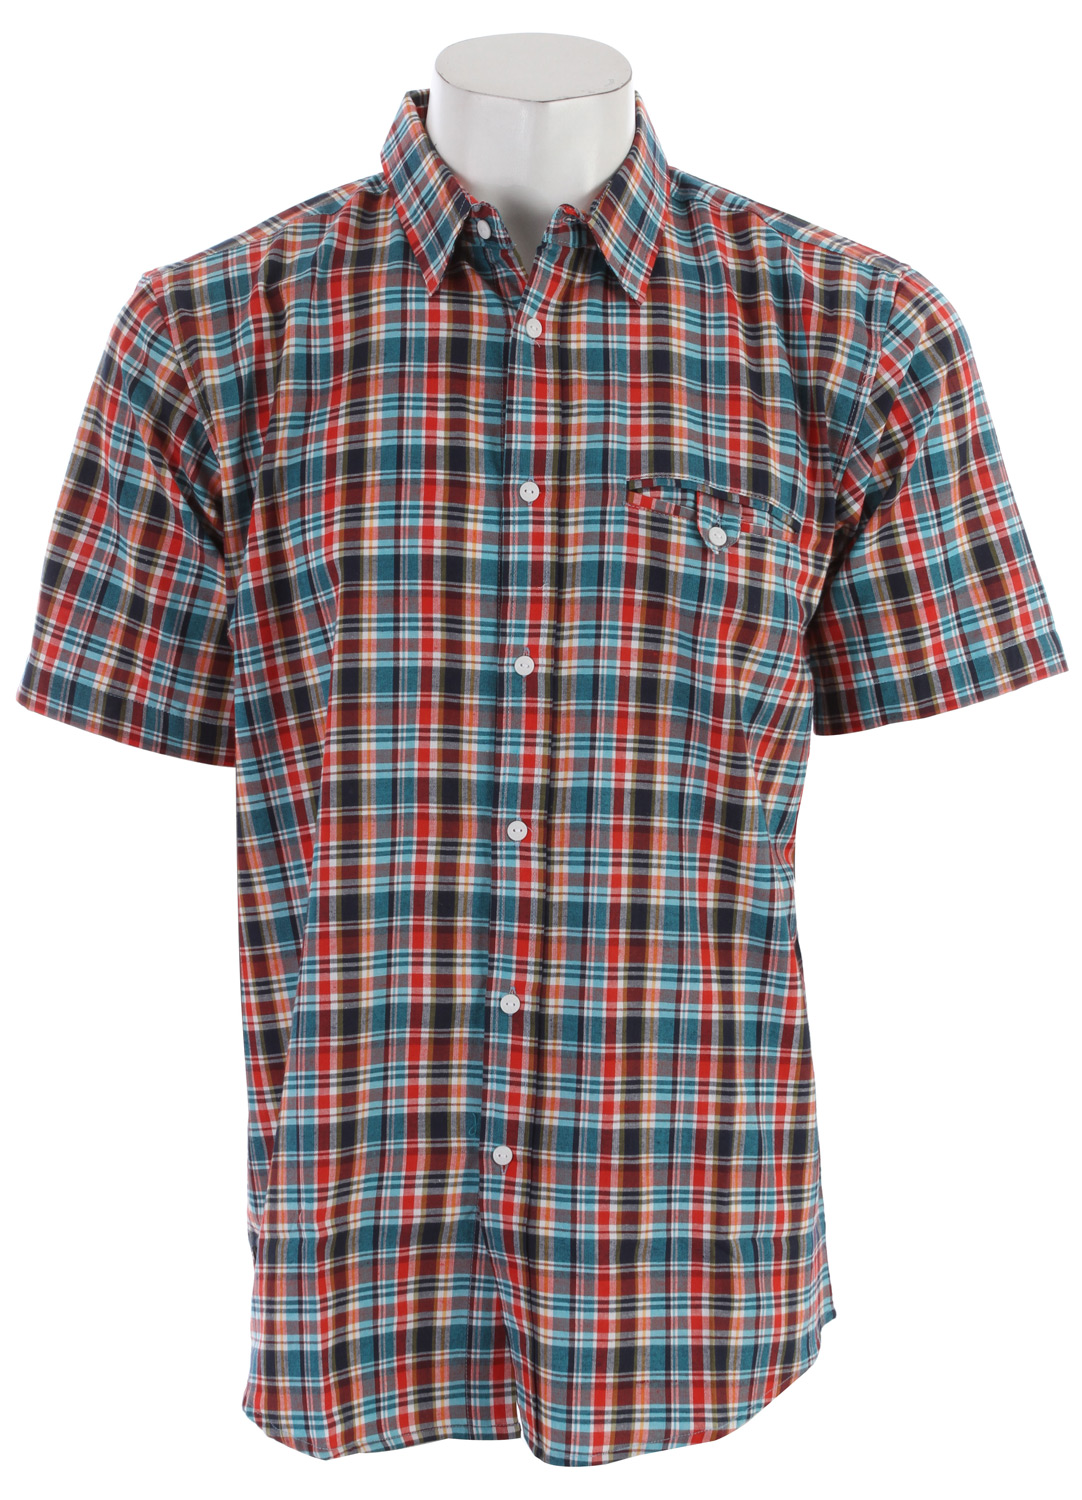 Key Features of the Matix Basteel Shirt: Slim fit 100% cotton - $30.95